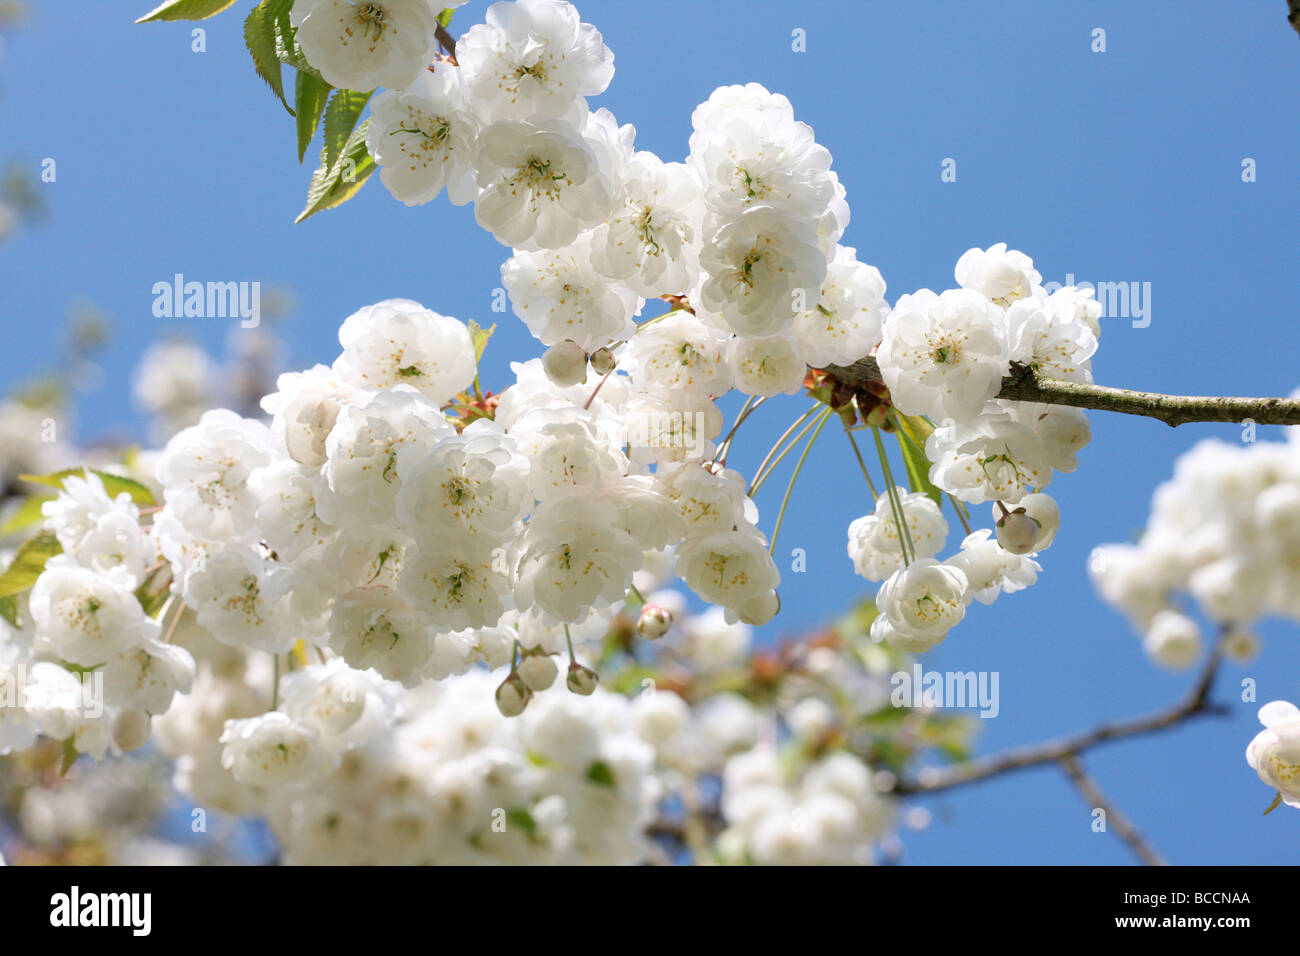 double gean blossom with its characteristic white drooping clusters a beautiful cherry tree - Stock Image